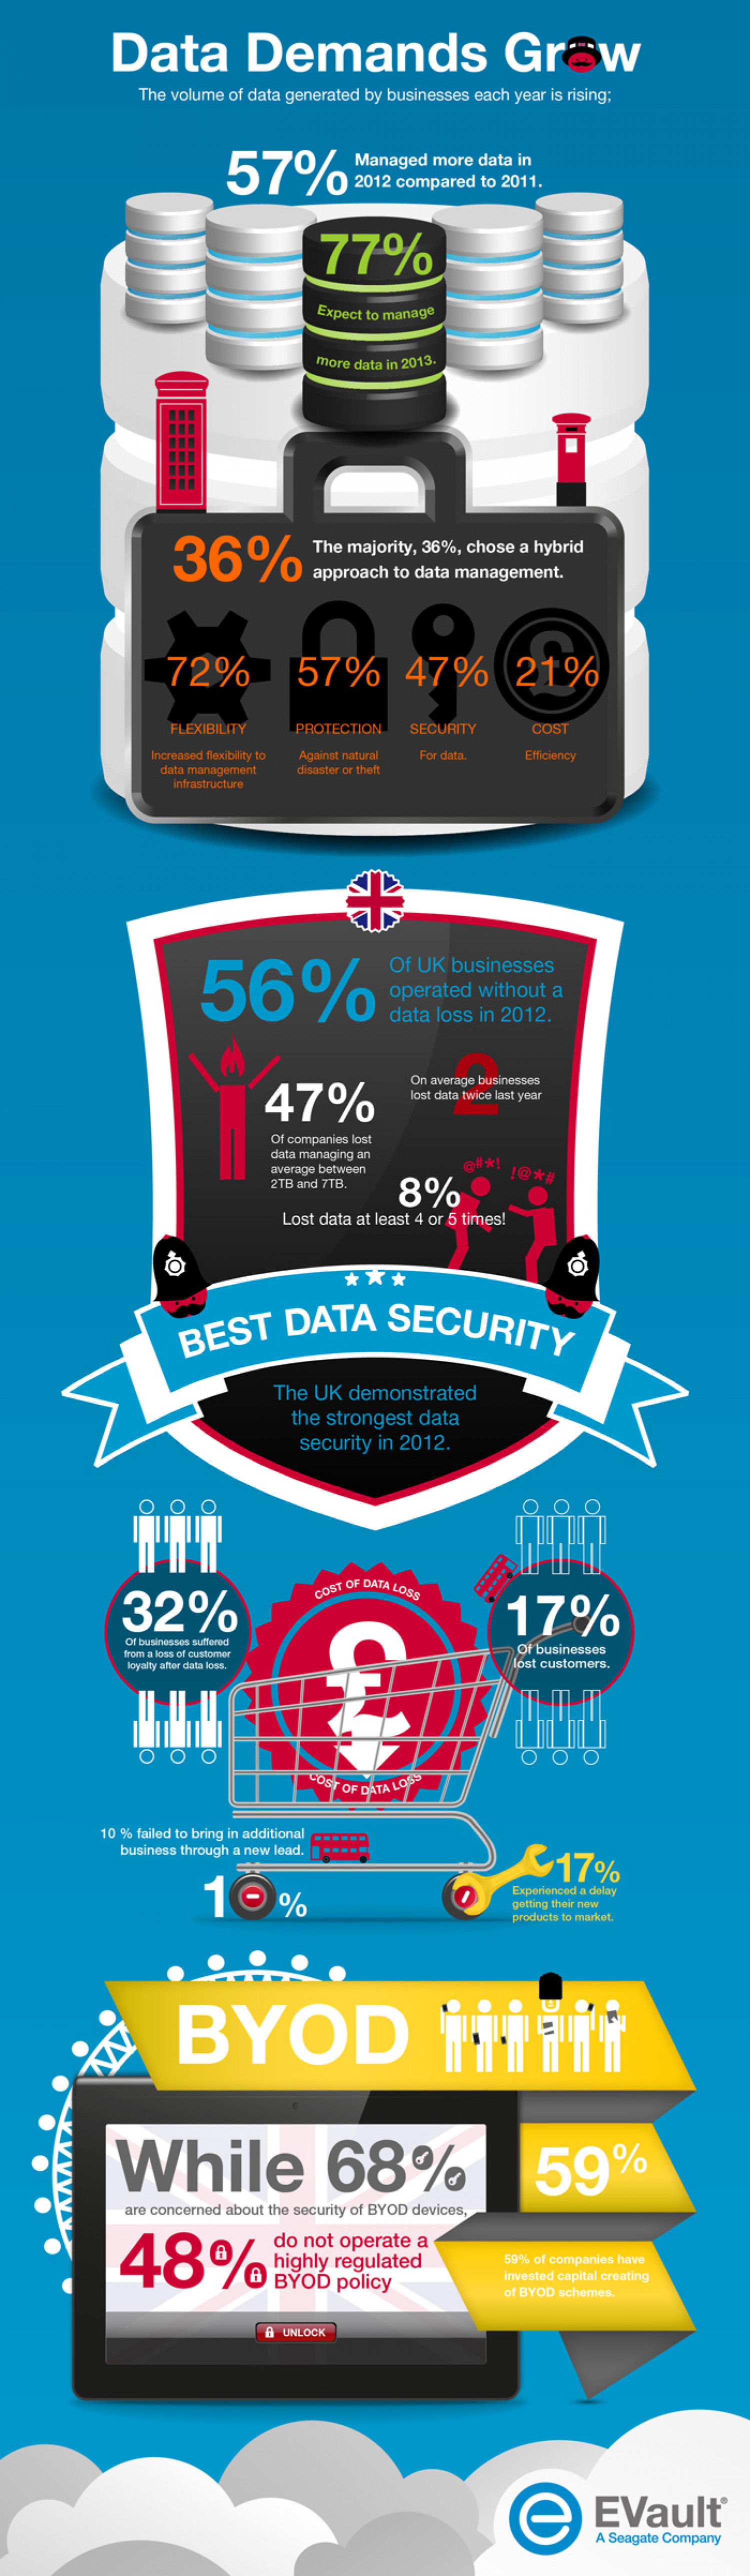 Data Demands Grow Infographic